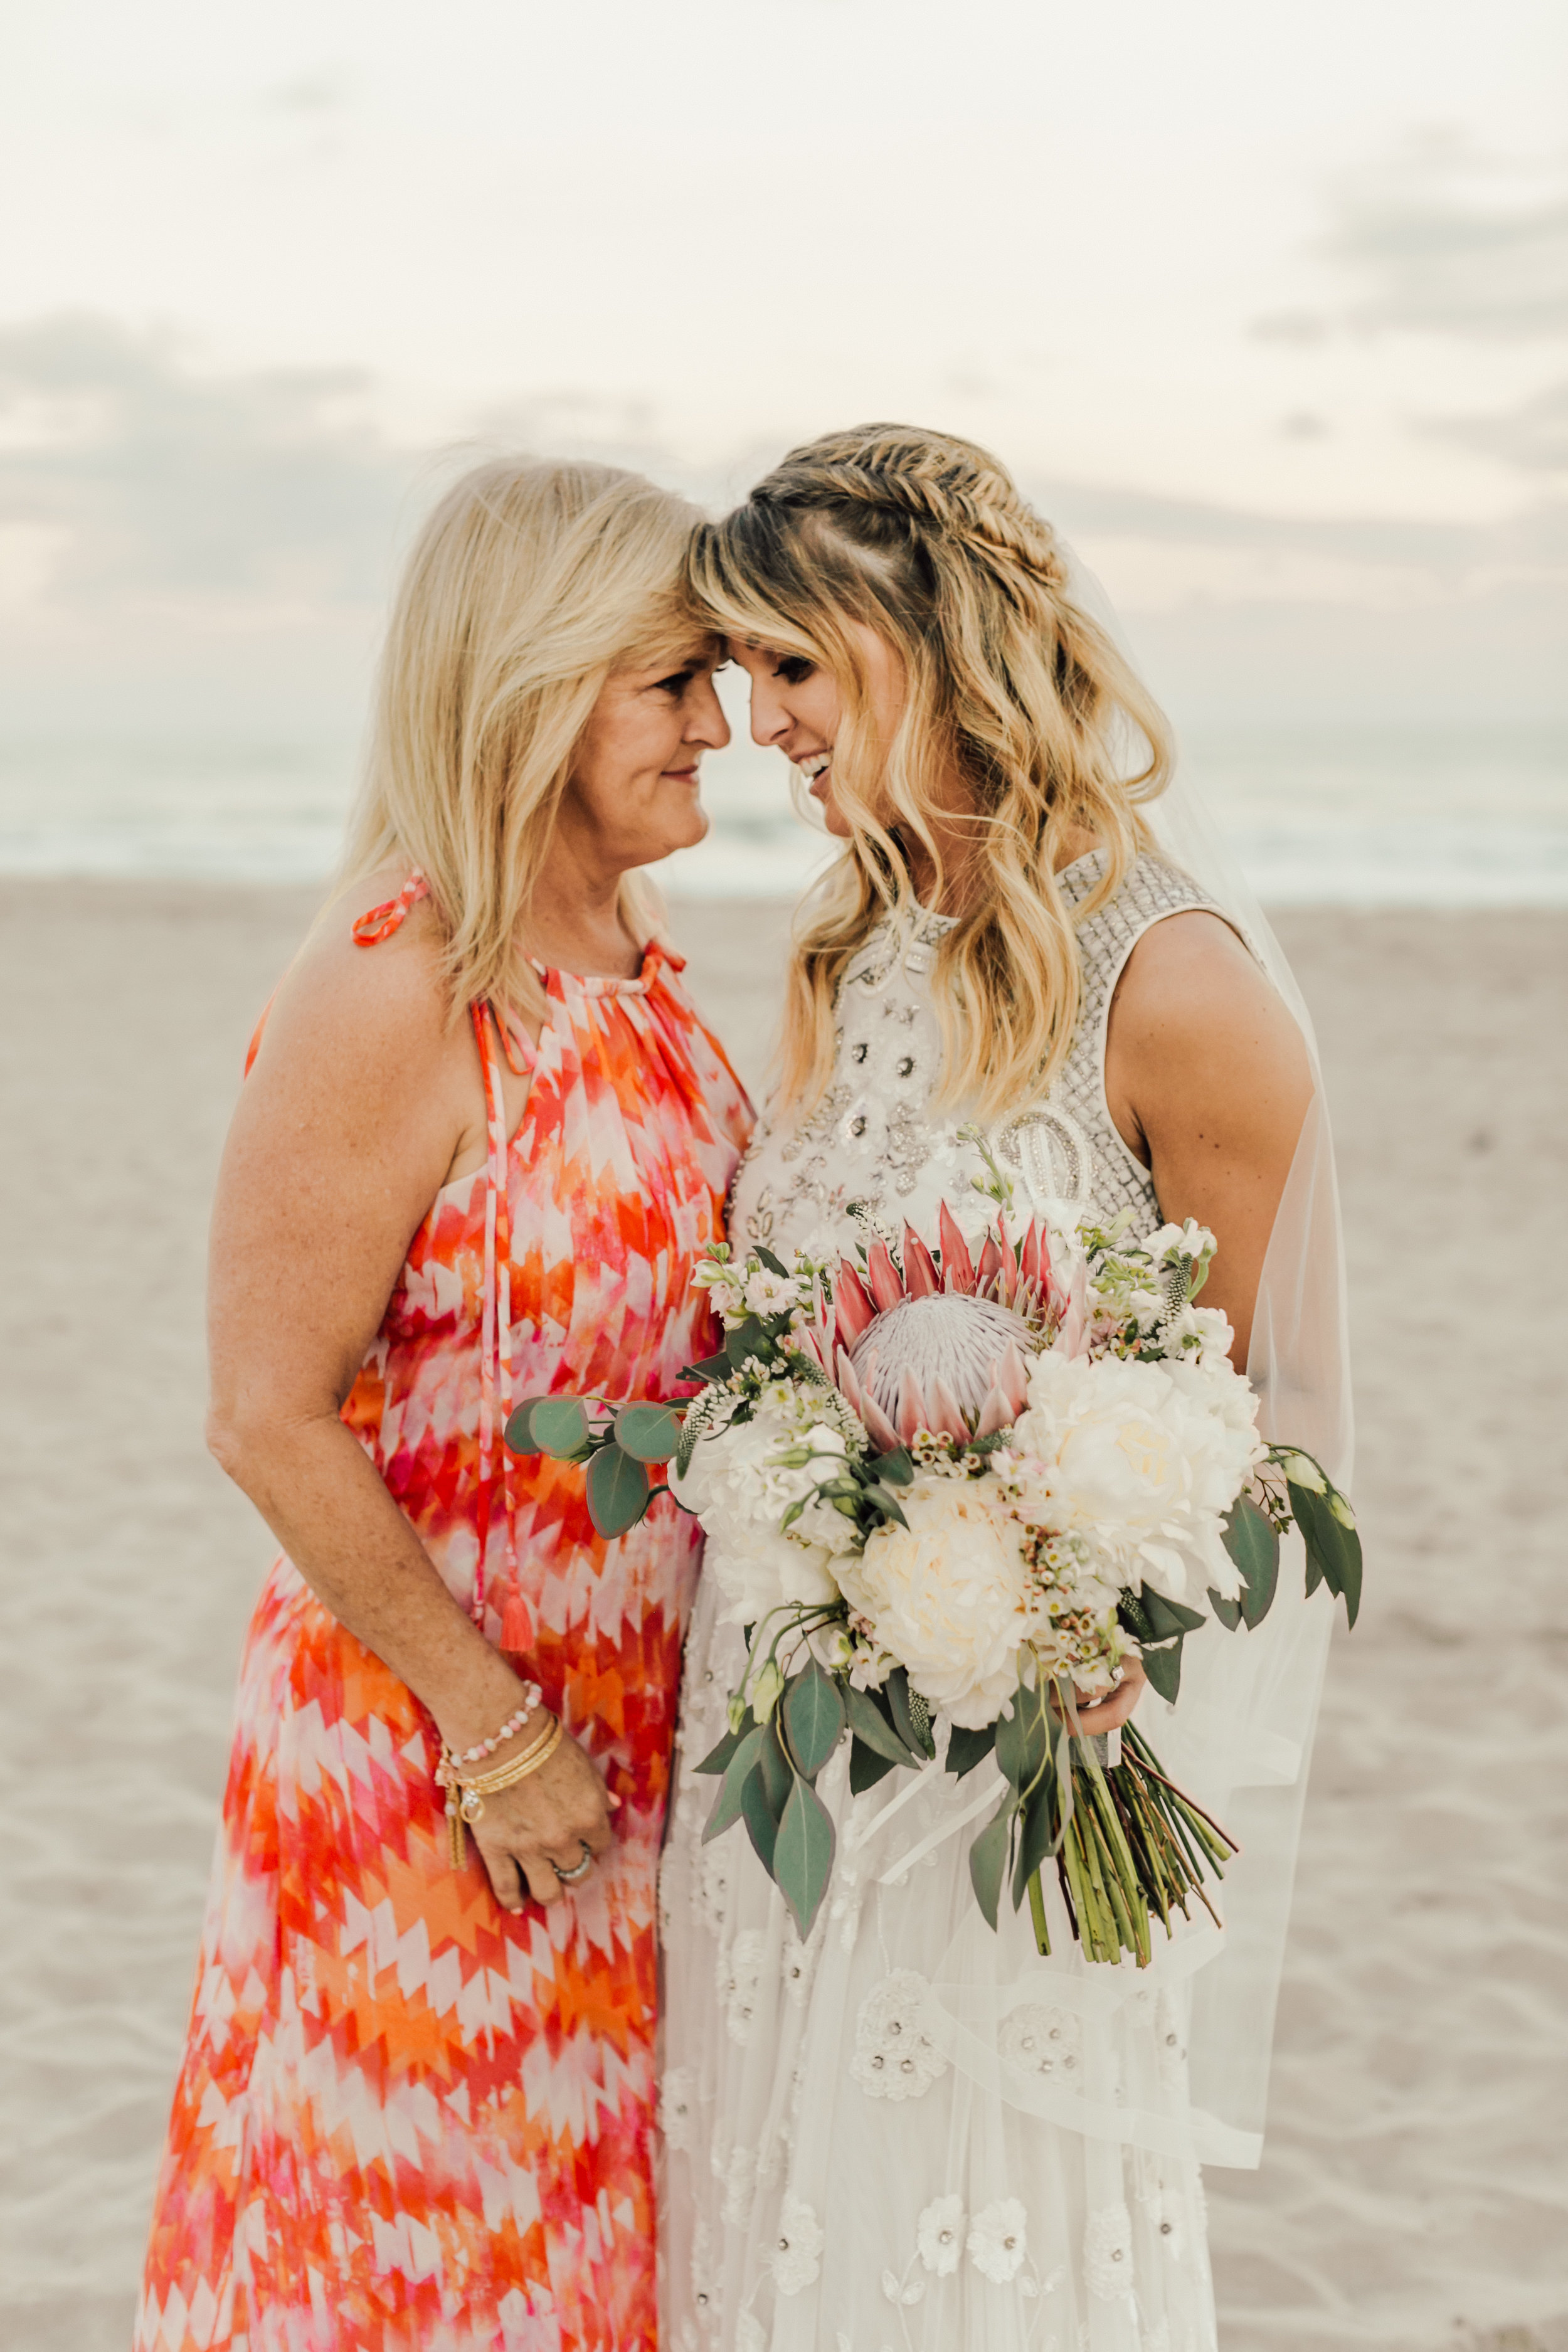 me & my mommy at my wedding. my idol, my rock, my strength, my #1 fan, my champion, my therapist & my best friend. happy mommy's day mommy, wish we could spend it together.